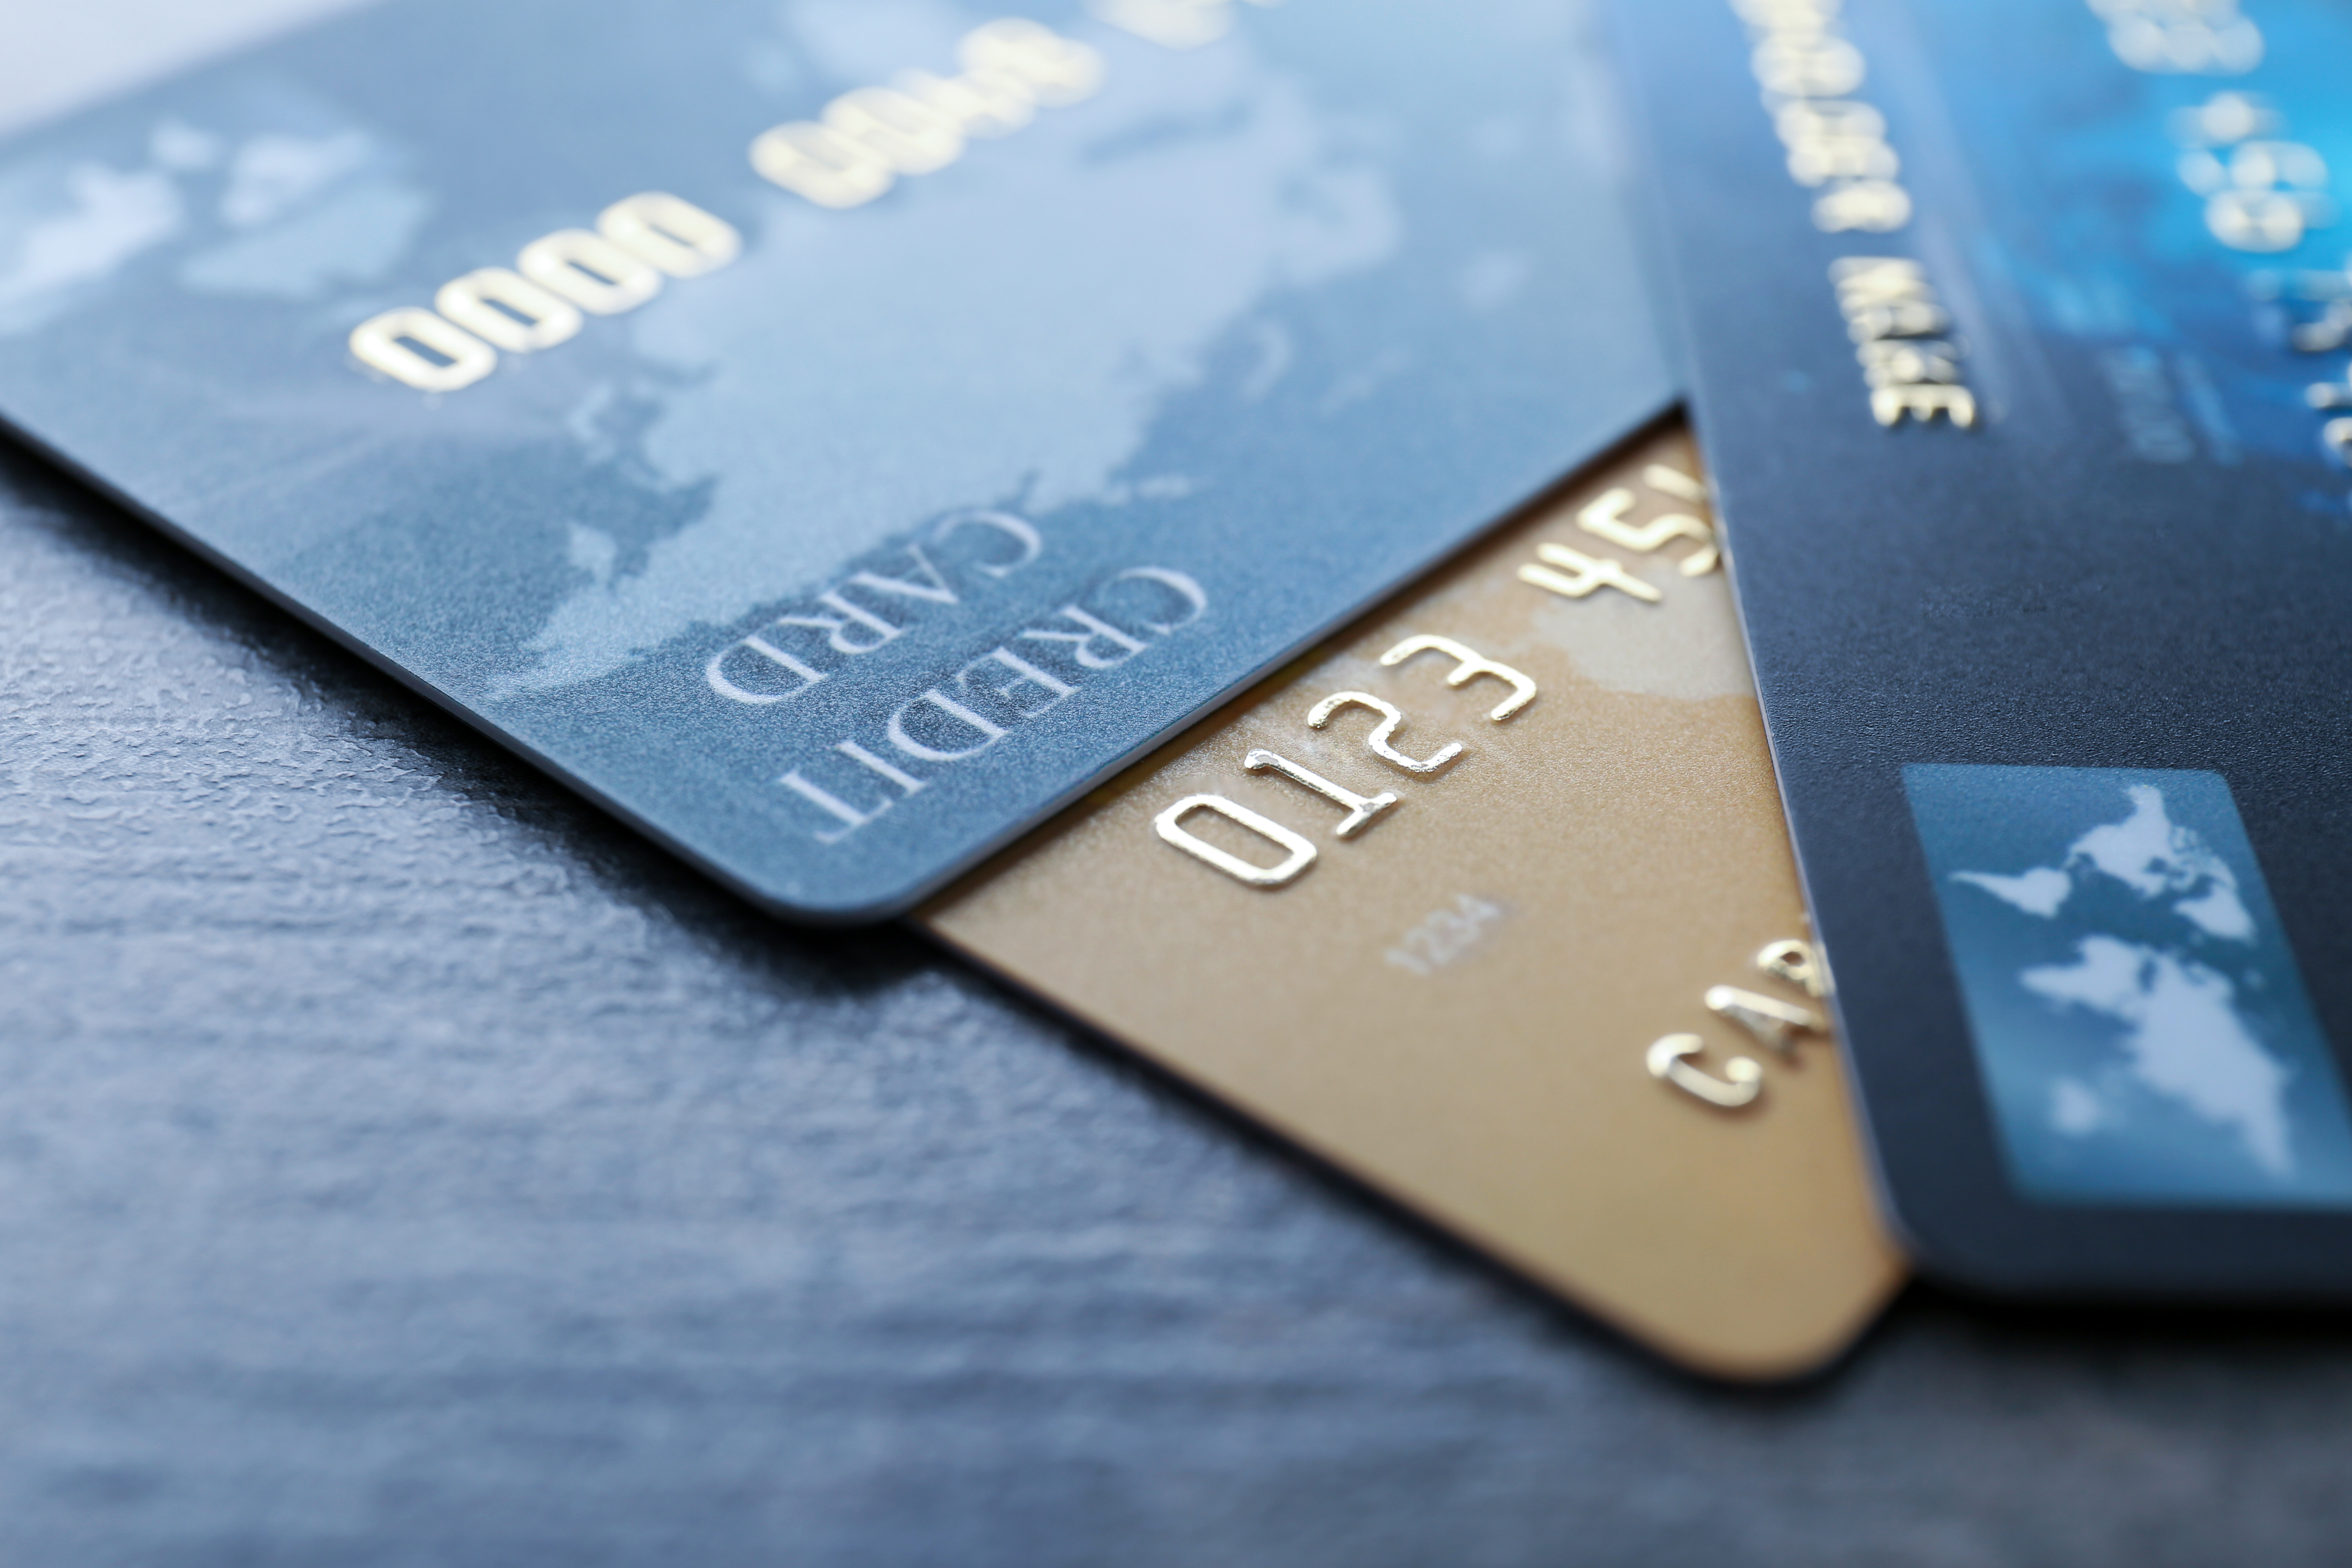 Supreme Court sides with American Express on merchant fees - Dayton